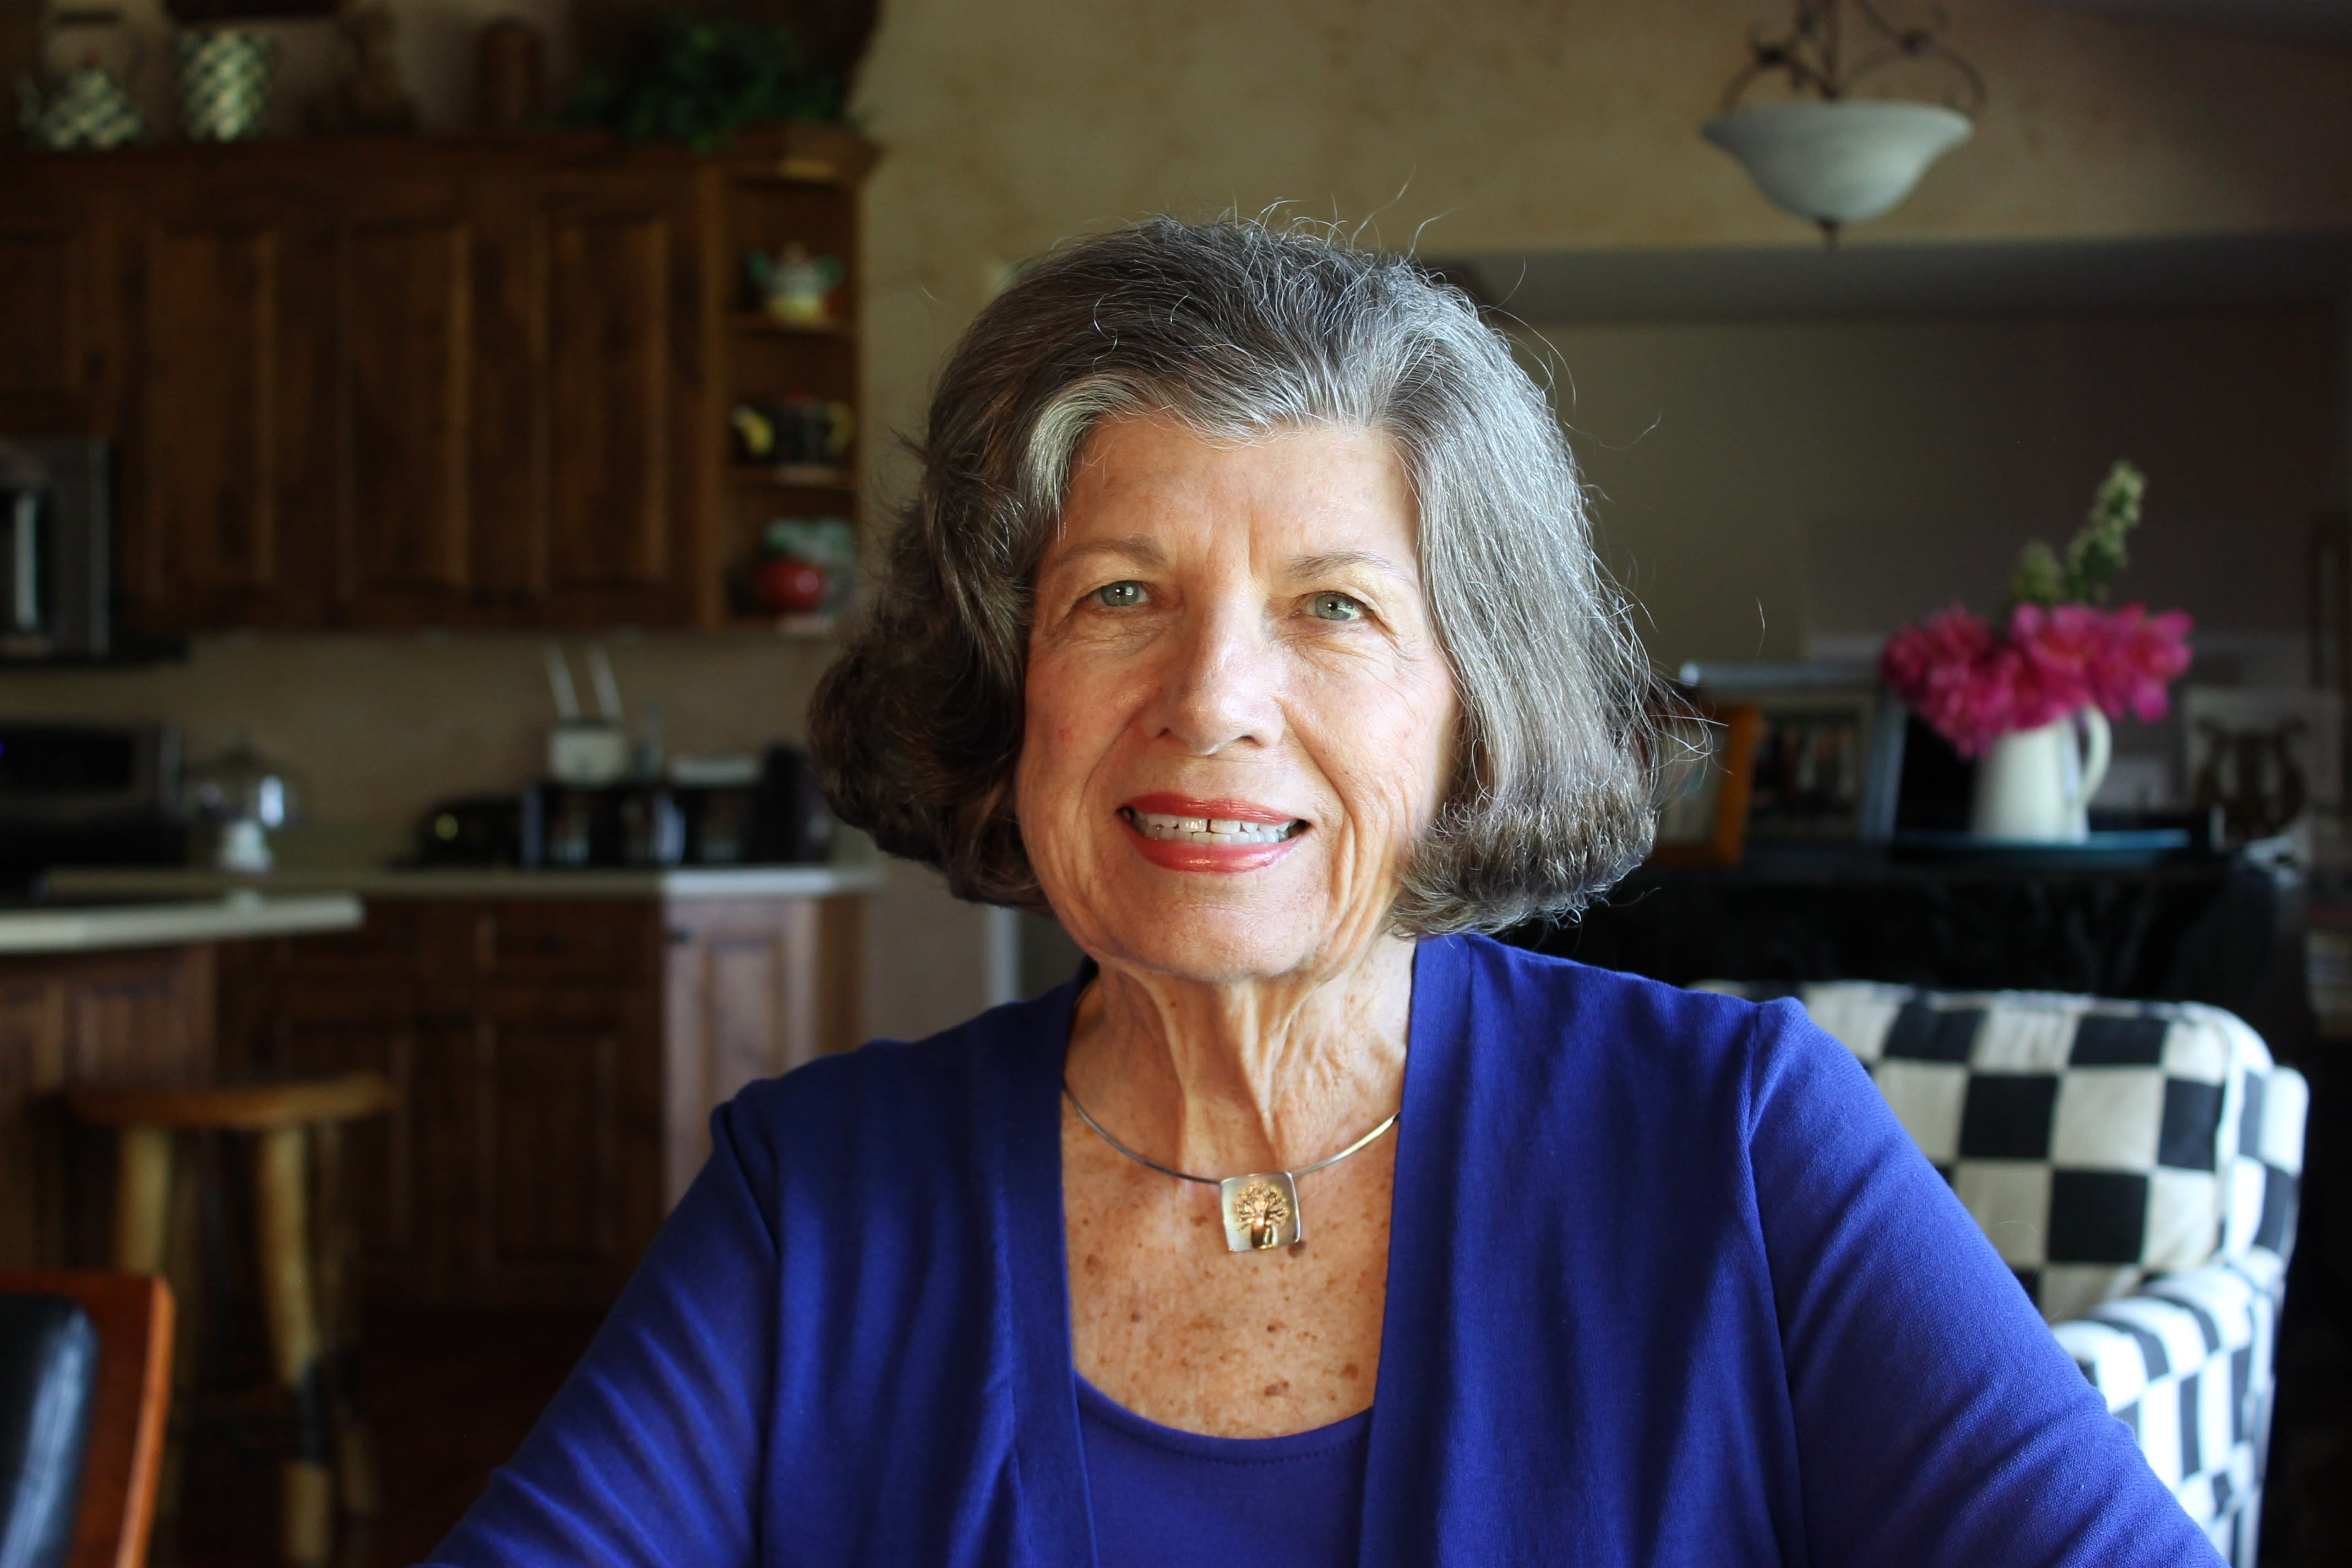 This July 5, 2019 photo shows JoAnn Morgan, NASA's first female launch controller, at her home in Bigfork, Mont. Morgan, who worked on the Apollo 11 mission in 1969, went on to become the Kennedy Space Center's first female senior executive. Retired since 2003, she splits her time between Florida and Montana, and encourages young women to study engineering. (AP Photo/Krysta Fauria)